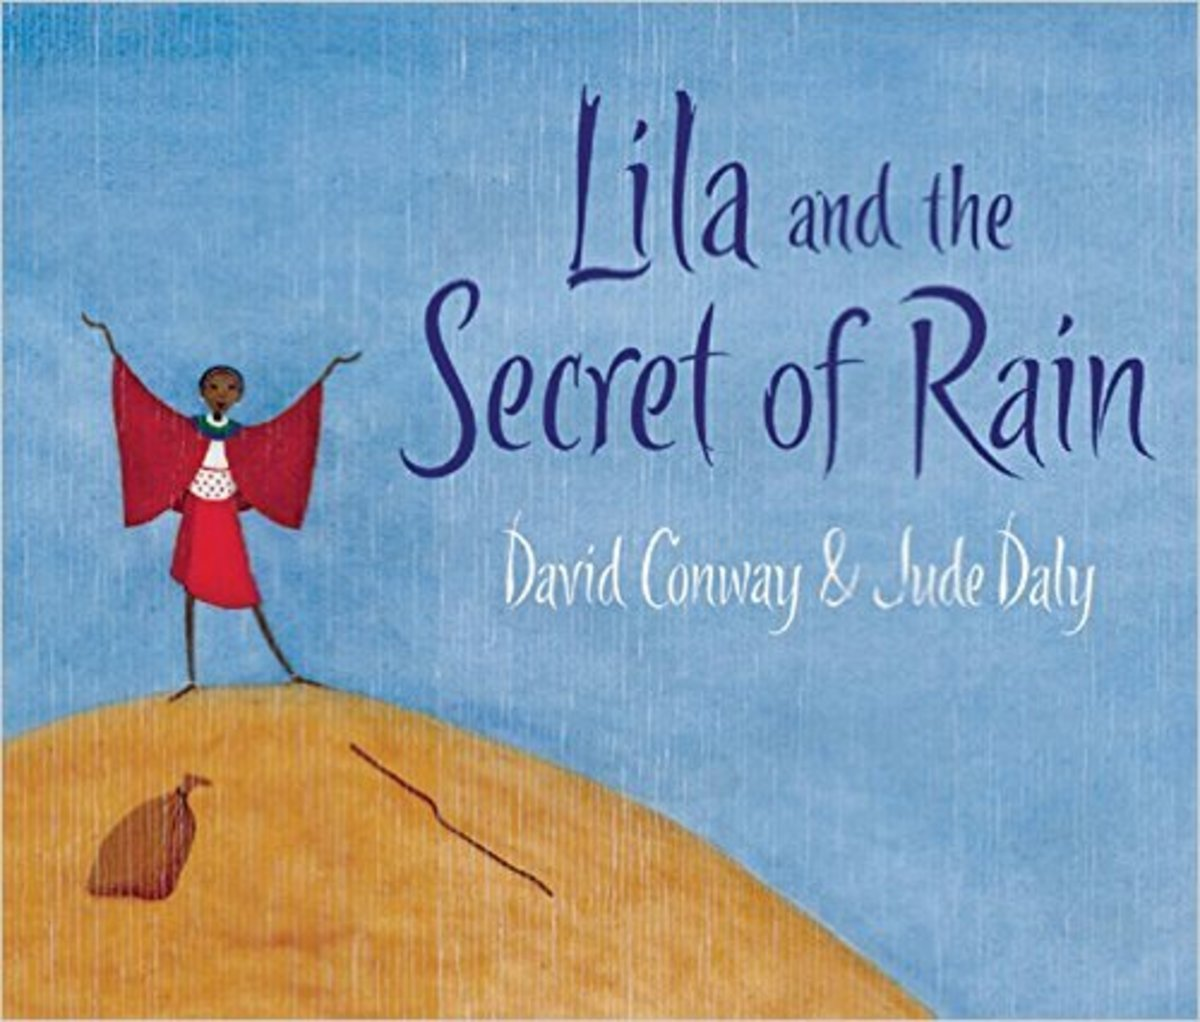 Lila and the Secret of Rain by David Conway - Image credit: amazon.com